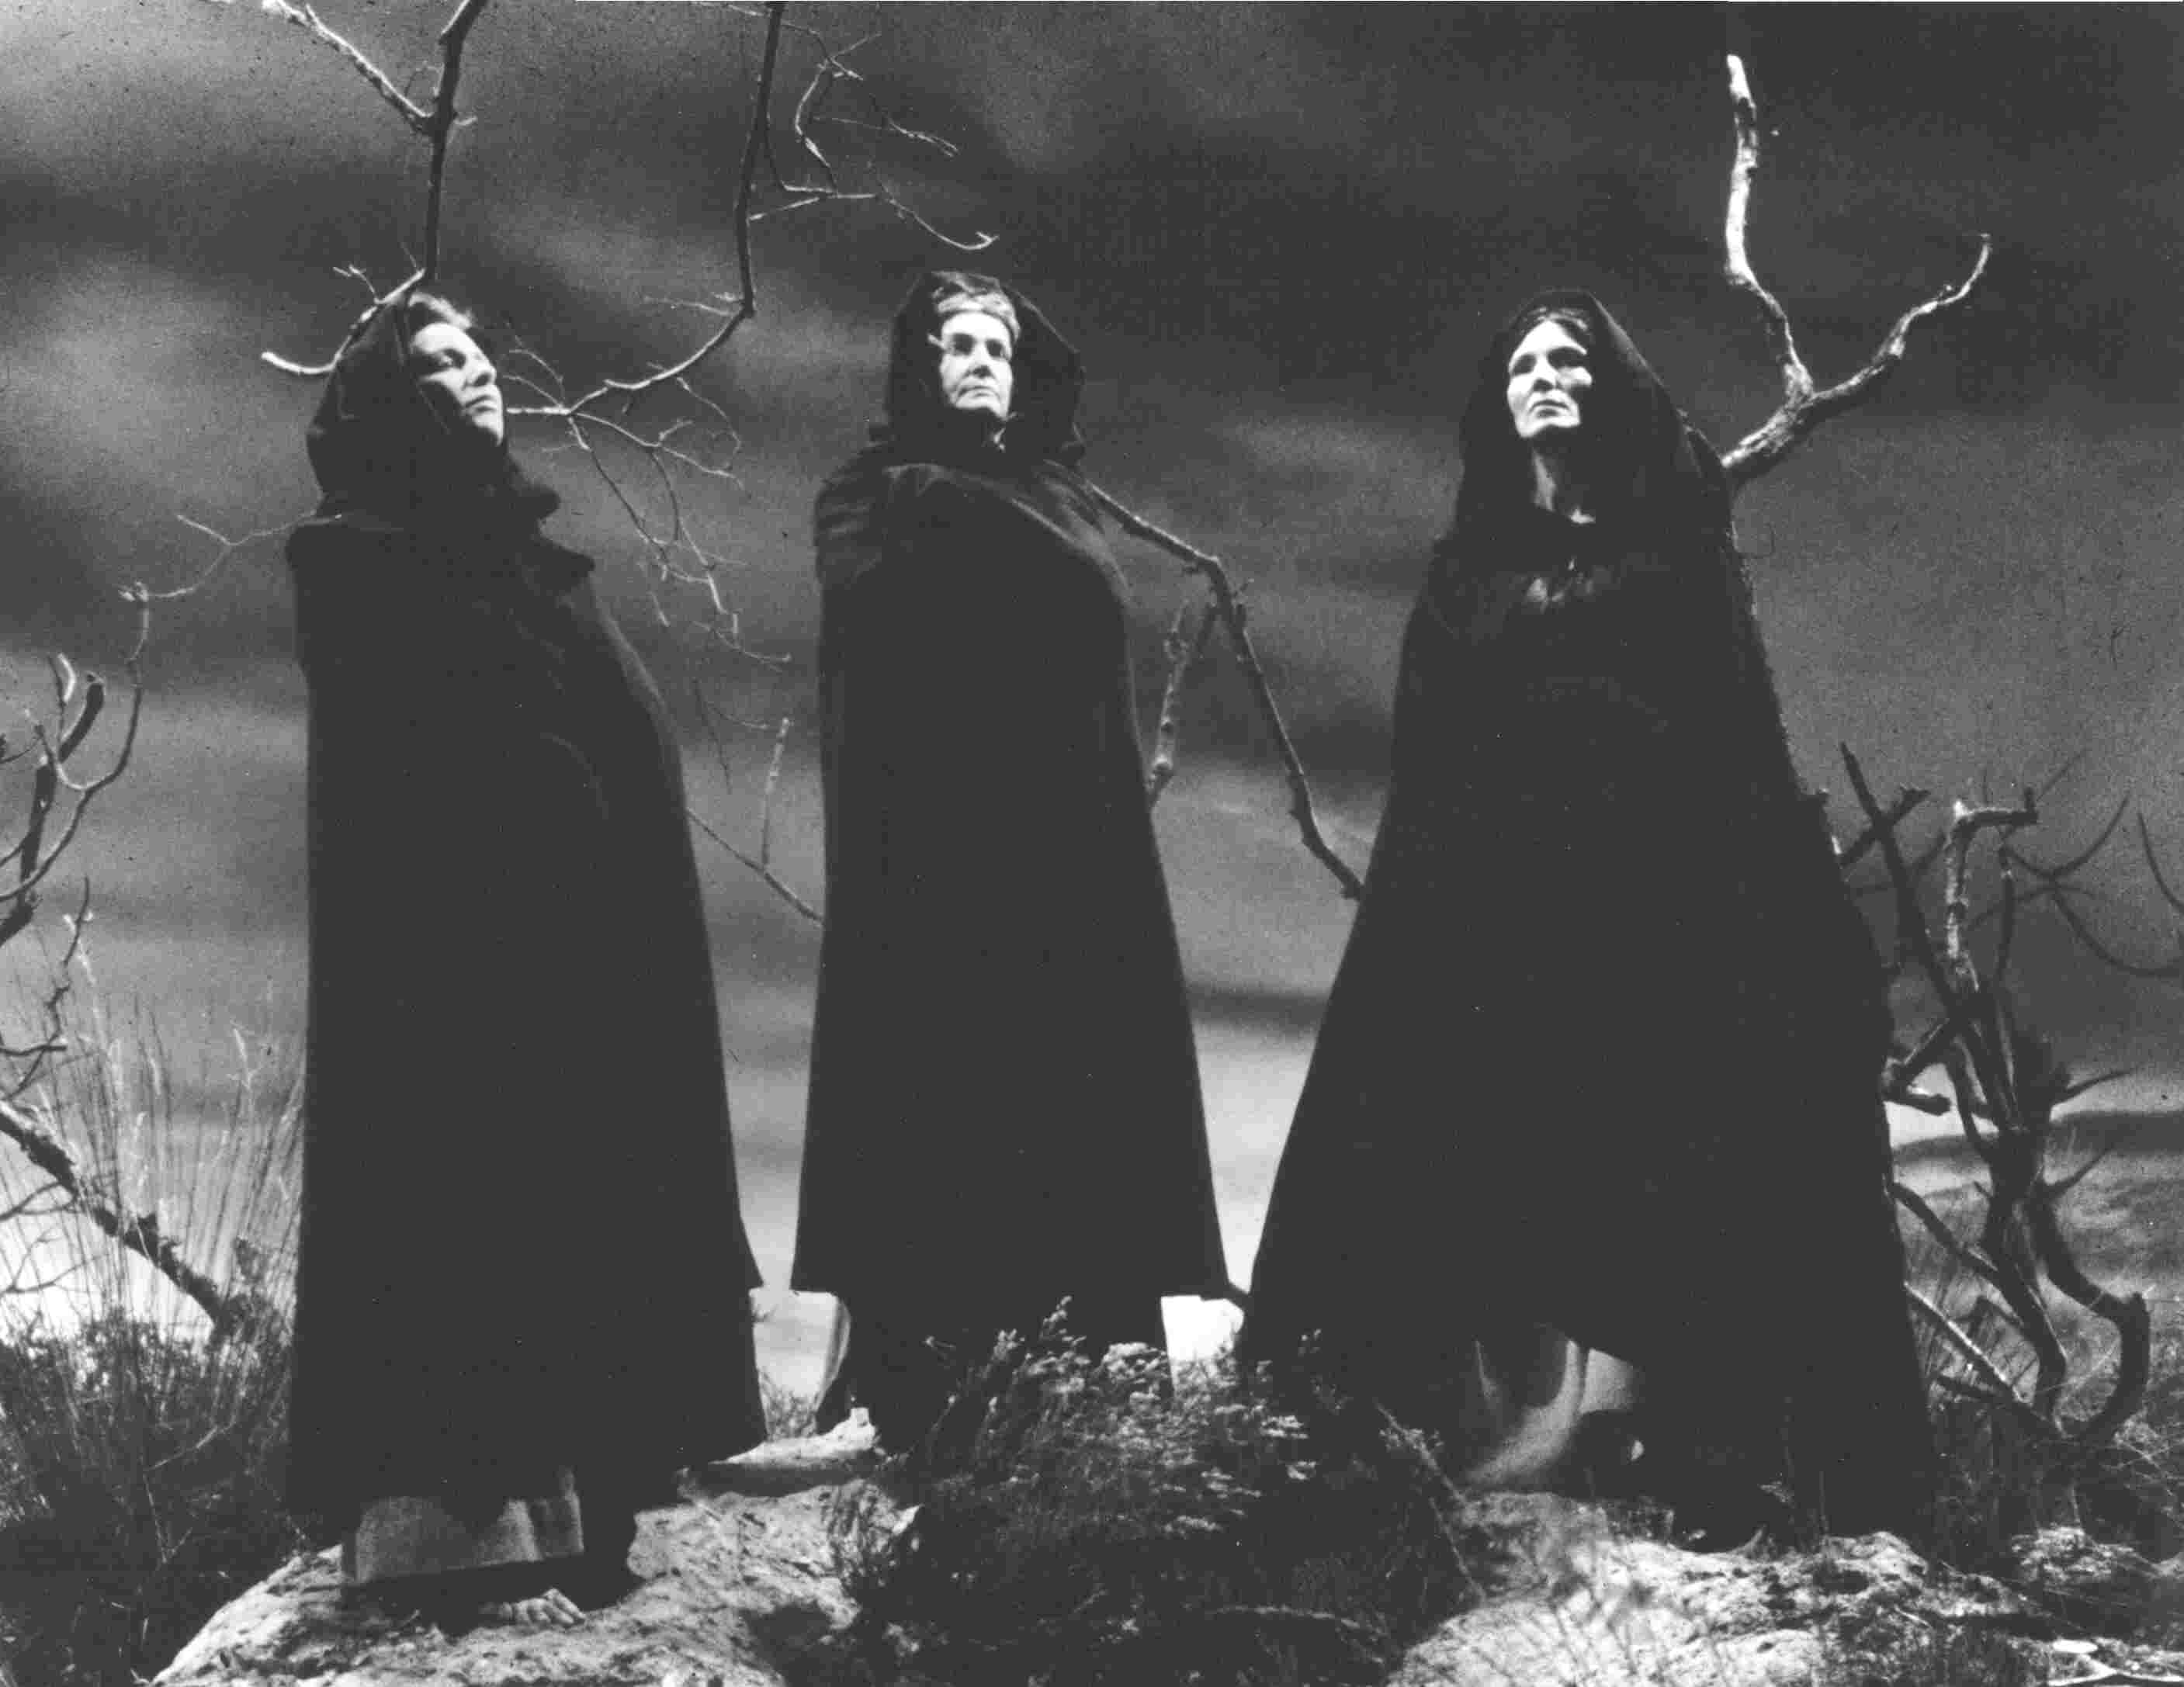 macbeth s three prayers to darkness He heard the bodyguards praying and could not say amen when they finished their prayers lady macbeth's macbeth's dormant ambitions darkness.